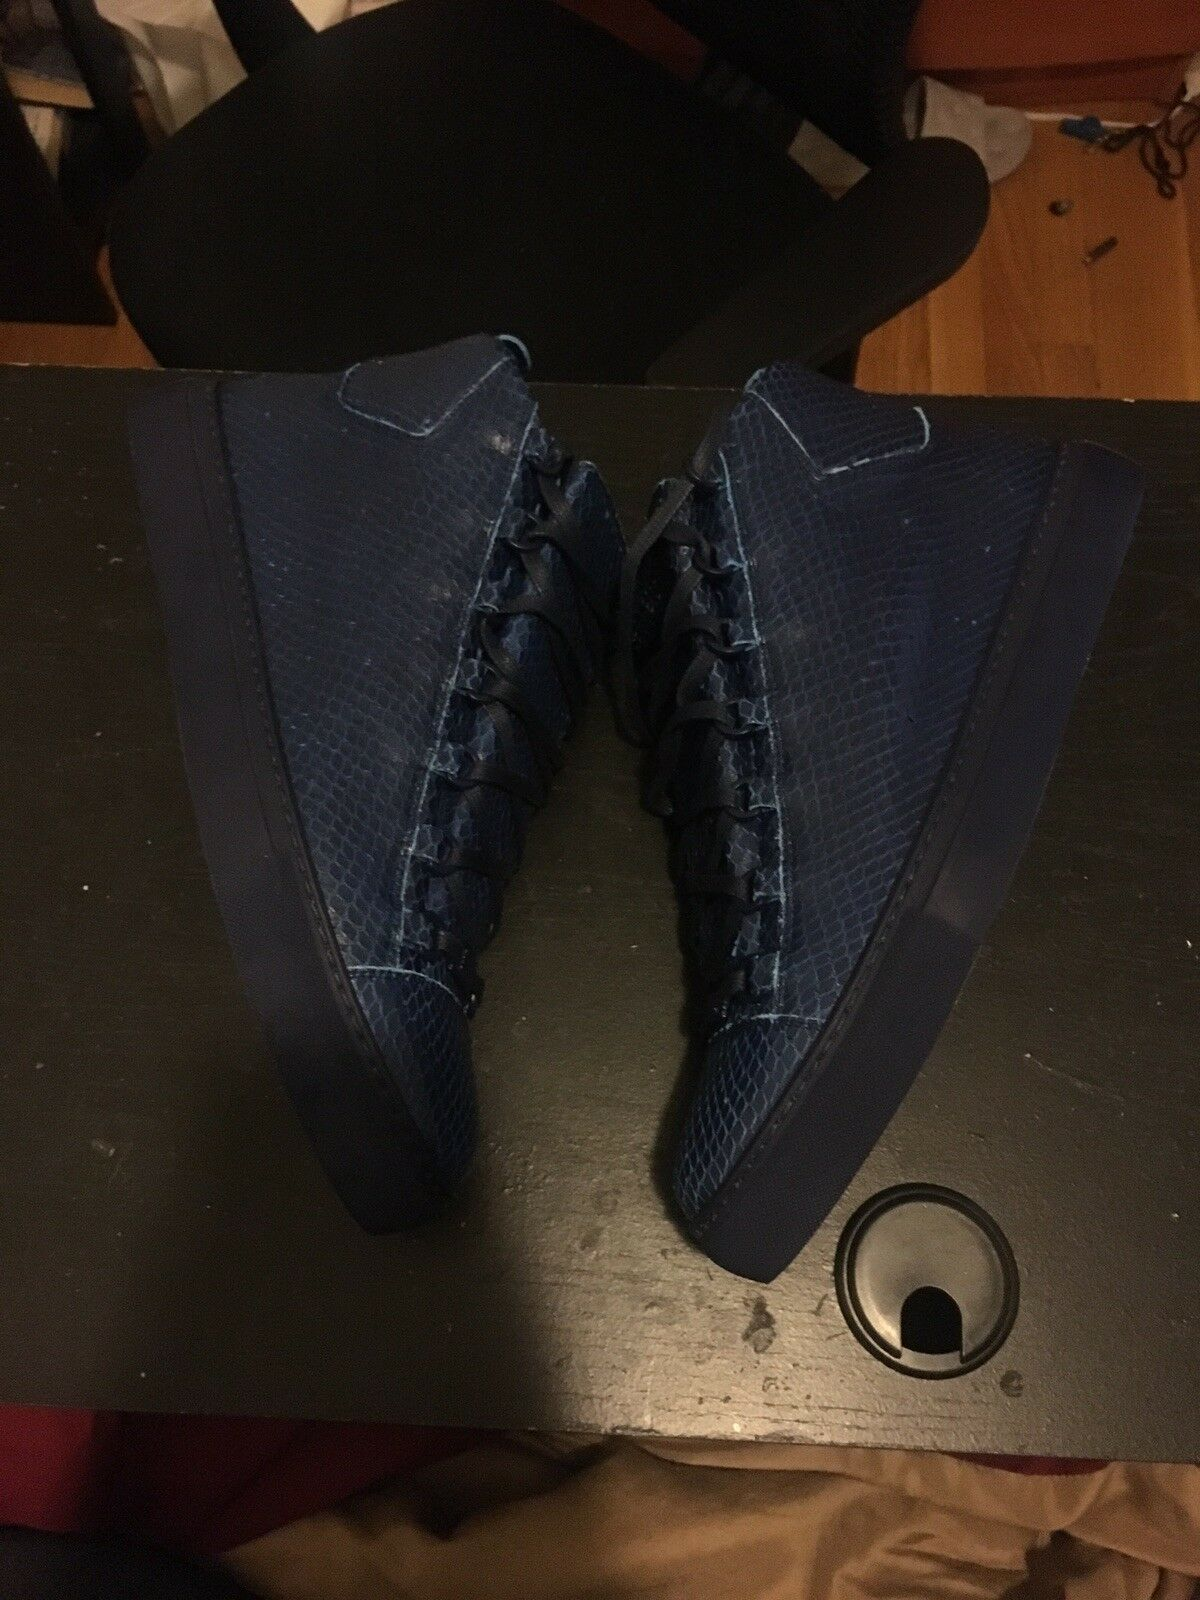 BALENCIAGA Python Arena High-Top Leather Sneakers bluee Size 44 UK (10.5 US)